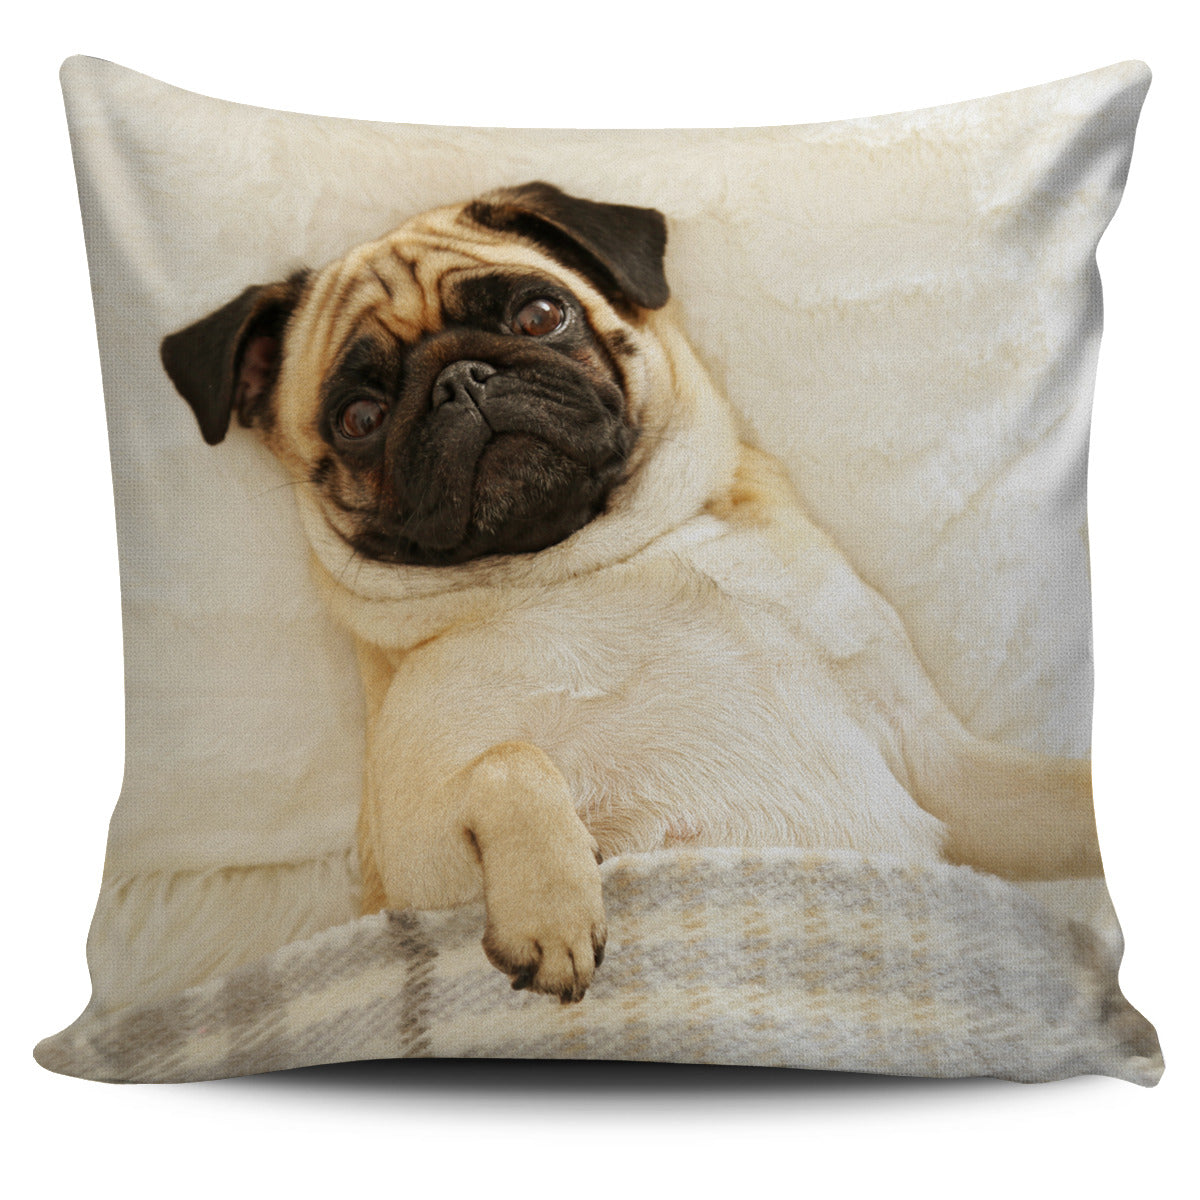 Sleepy Pug Pillow Cover